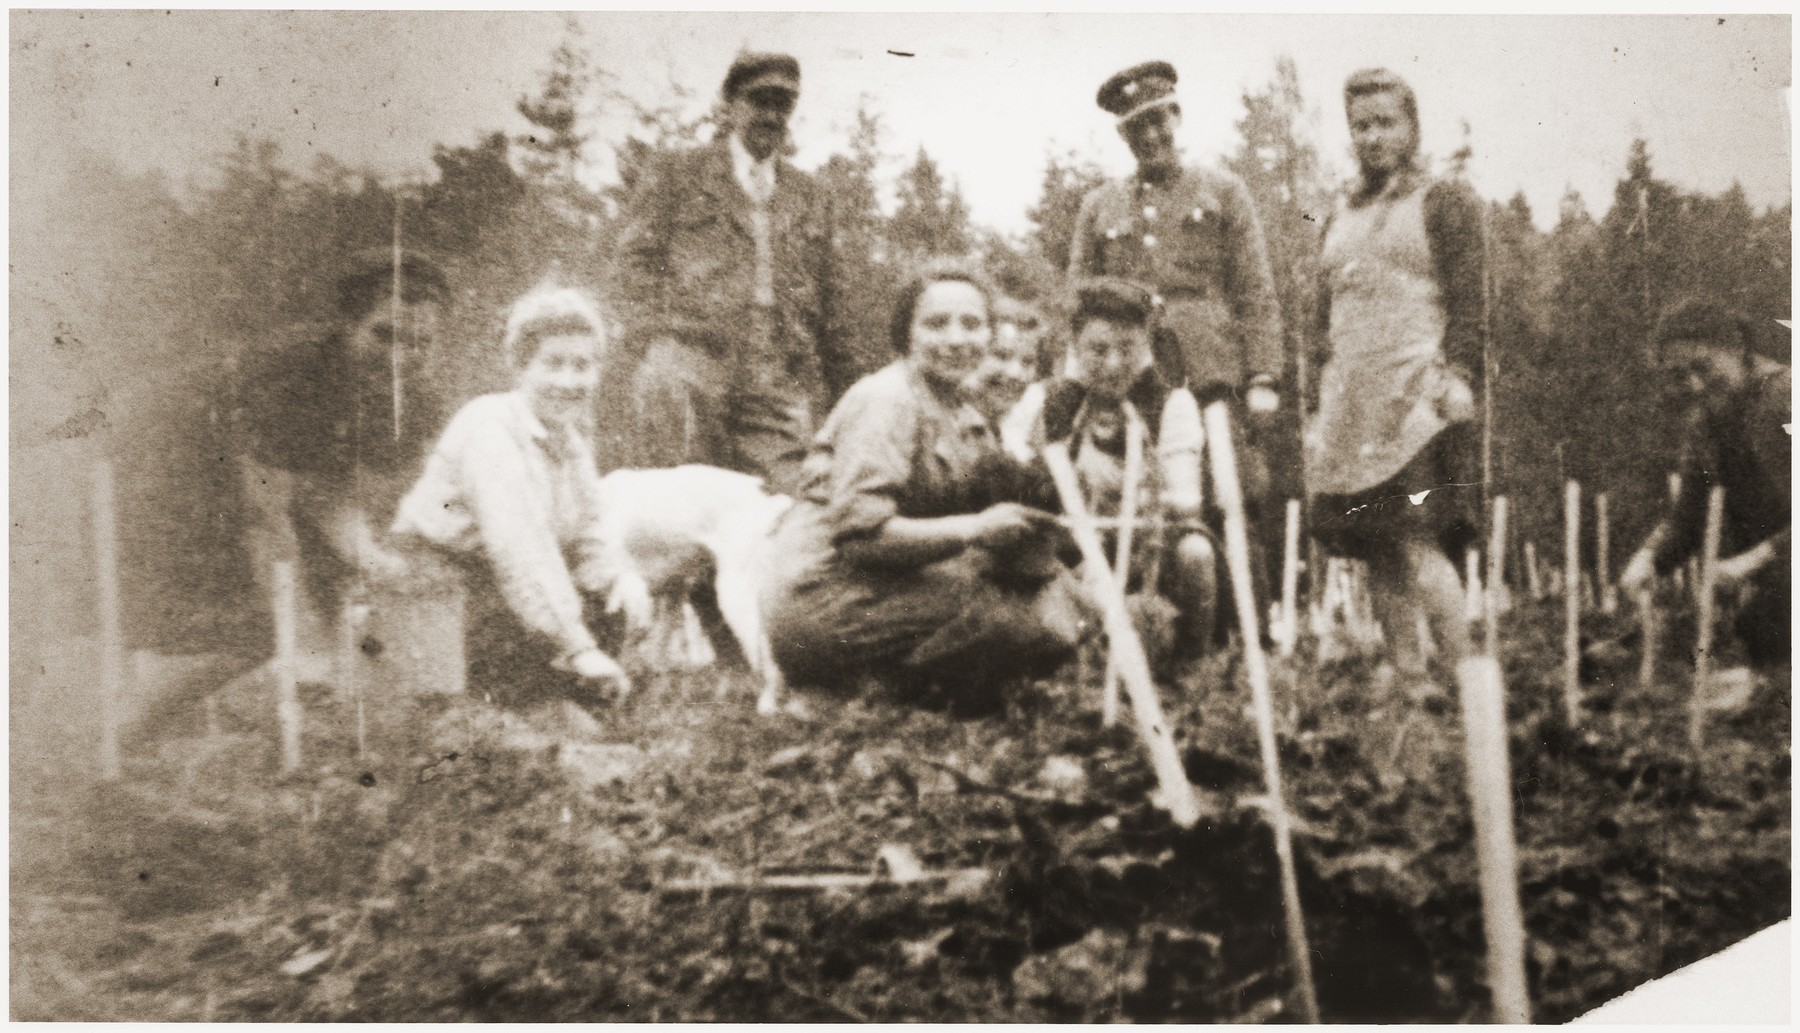 Jews from Wisnicz Nowy plant trees in Kopaliny supervised by a Polish soldier.    Among those pictured is Sala Schoen (front, left).